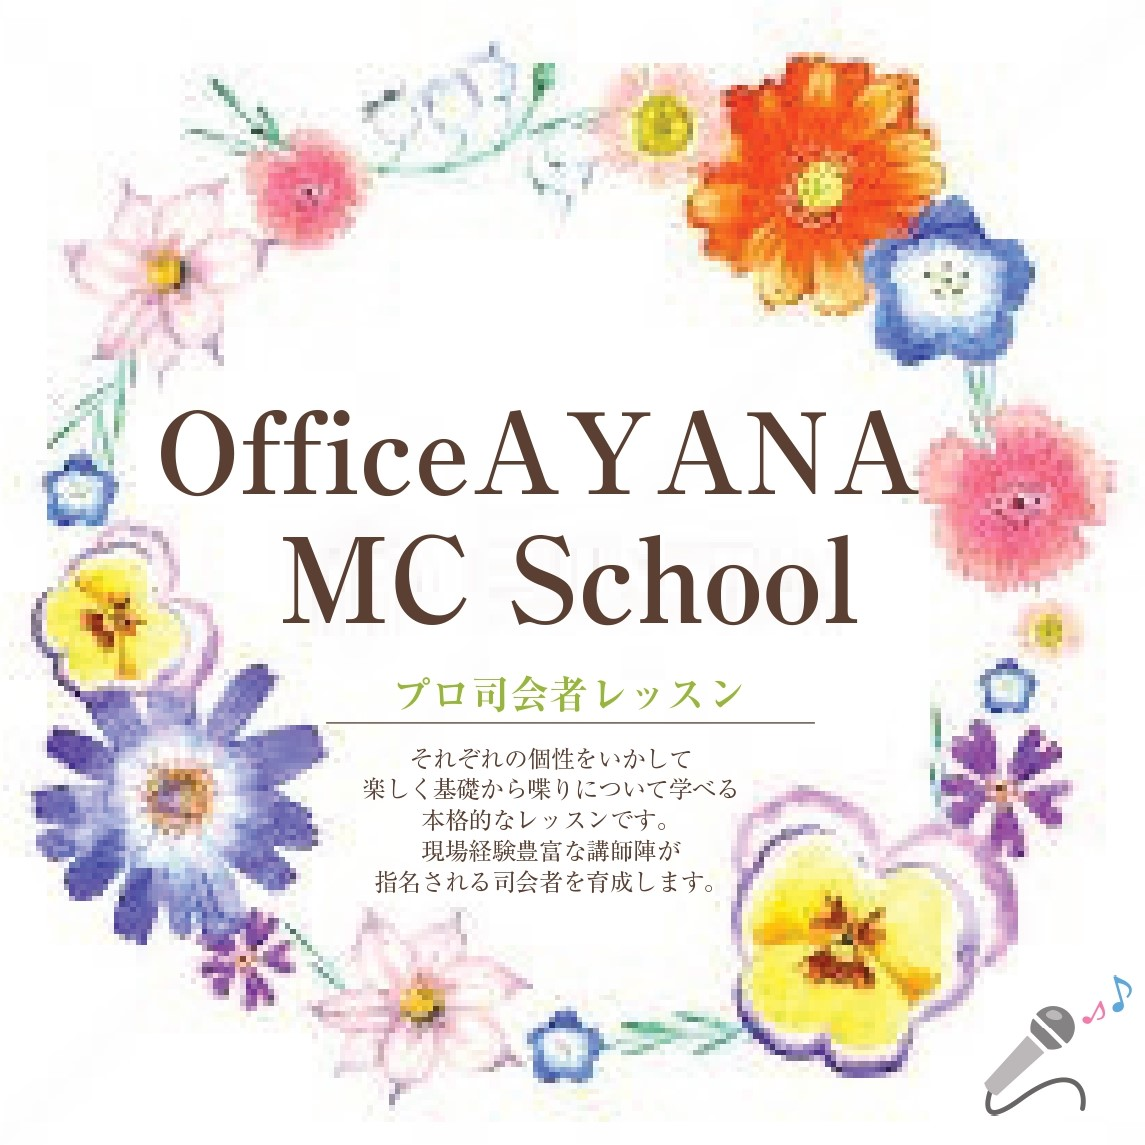 Office AYANA MC School のロゴ画像